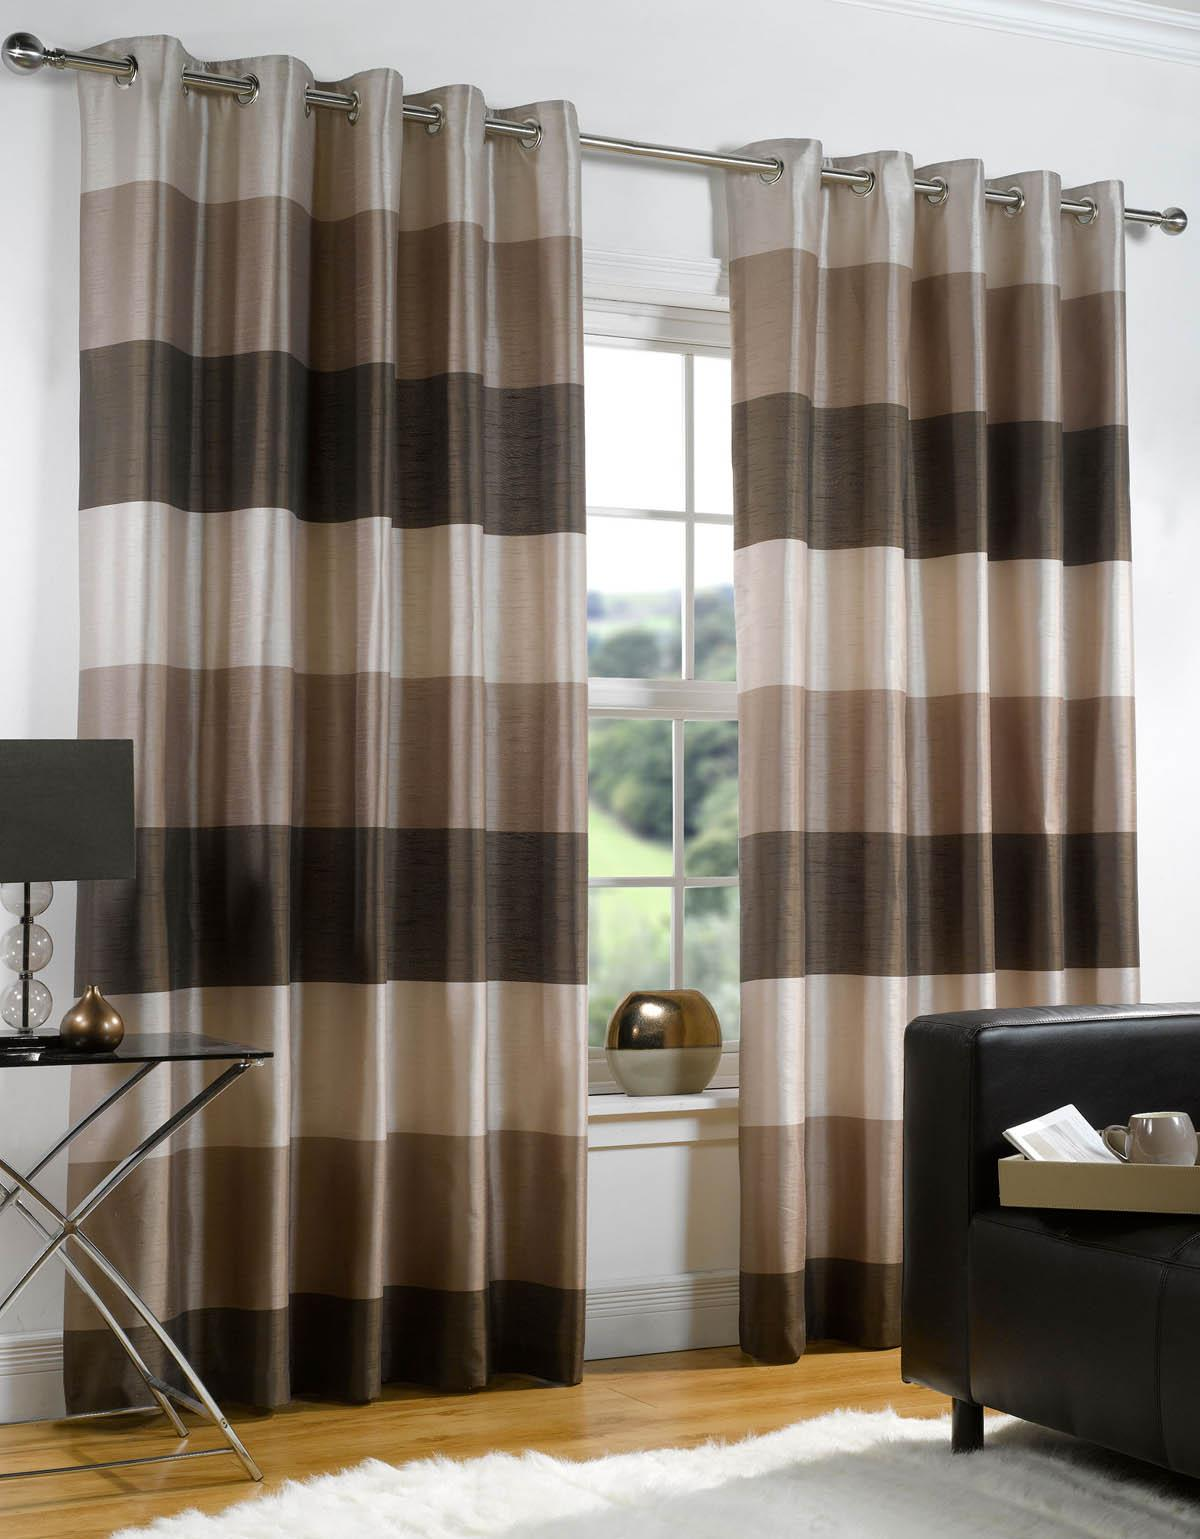 Rio-Chocolate 20+ Hottest Curtain Designs for 2019